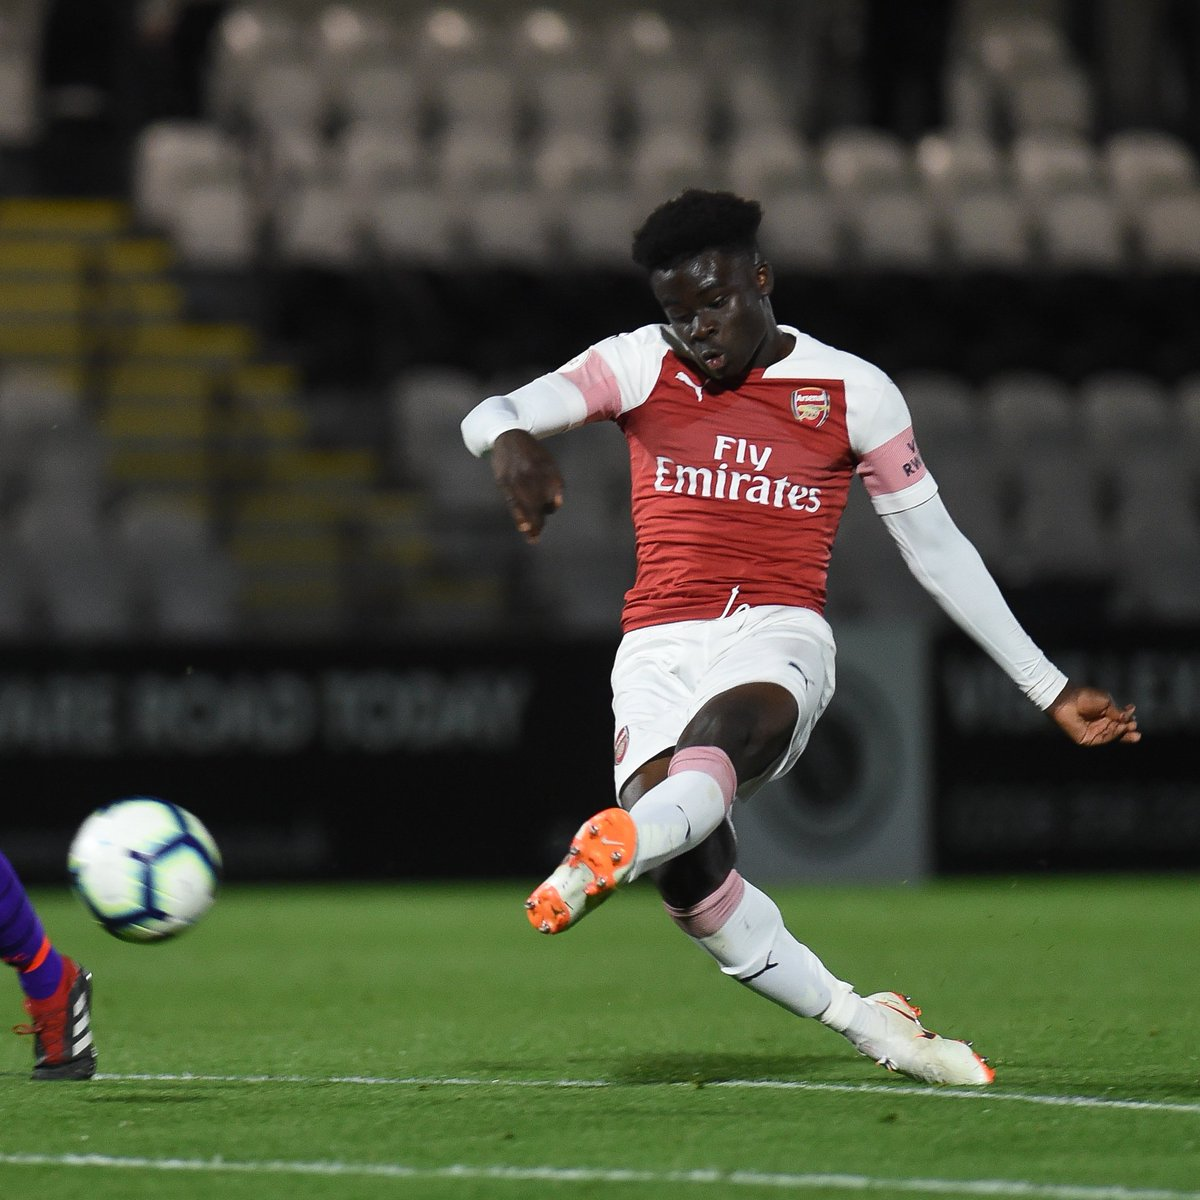 A dream @England Under-19s debut for Bukayo Saka ✨  ⏱ 82' comes off the bench ⏱ 85' scores England's third  In form for club and country 🔥